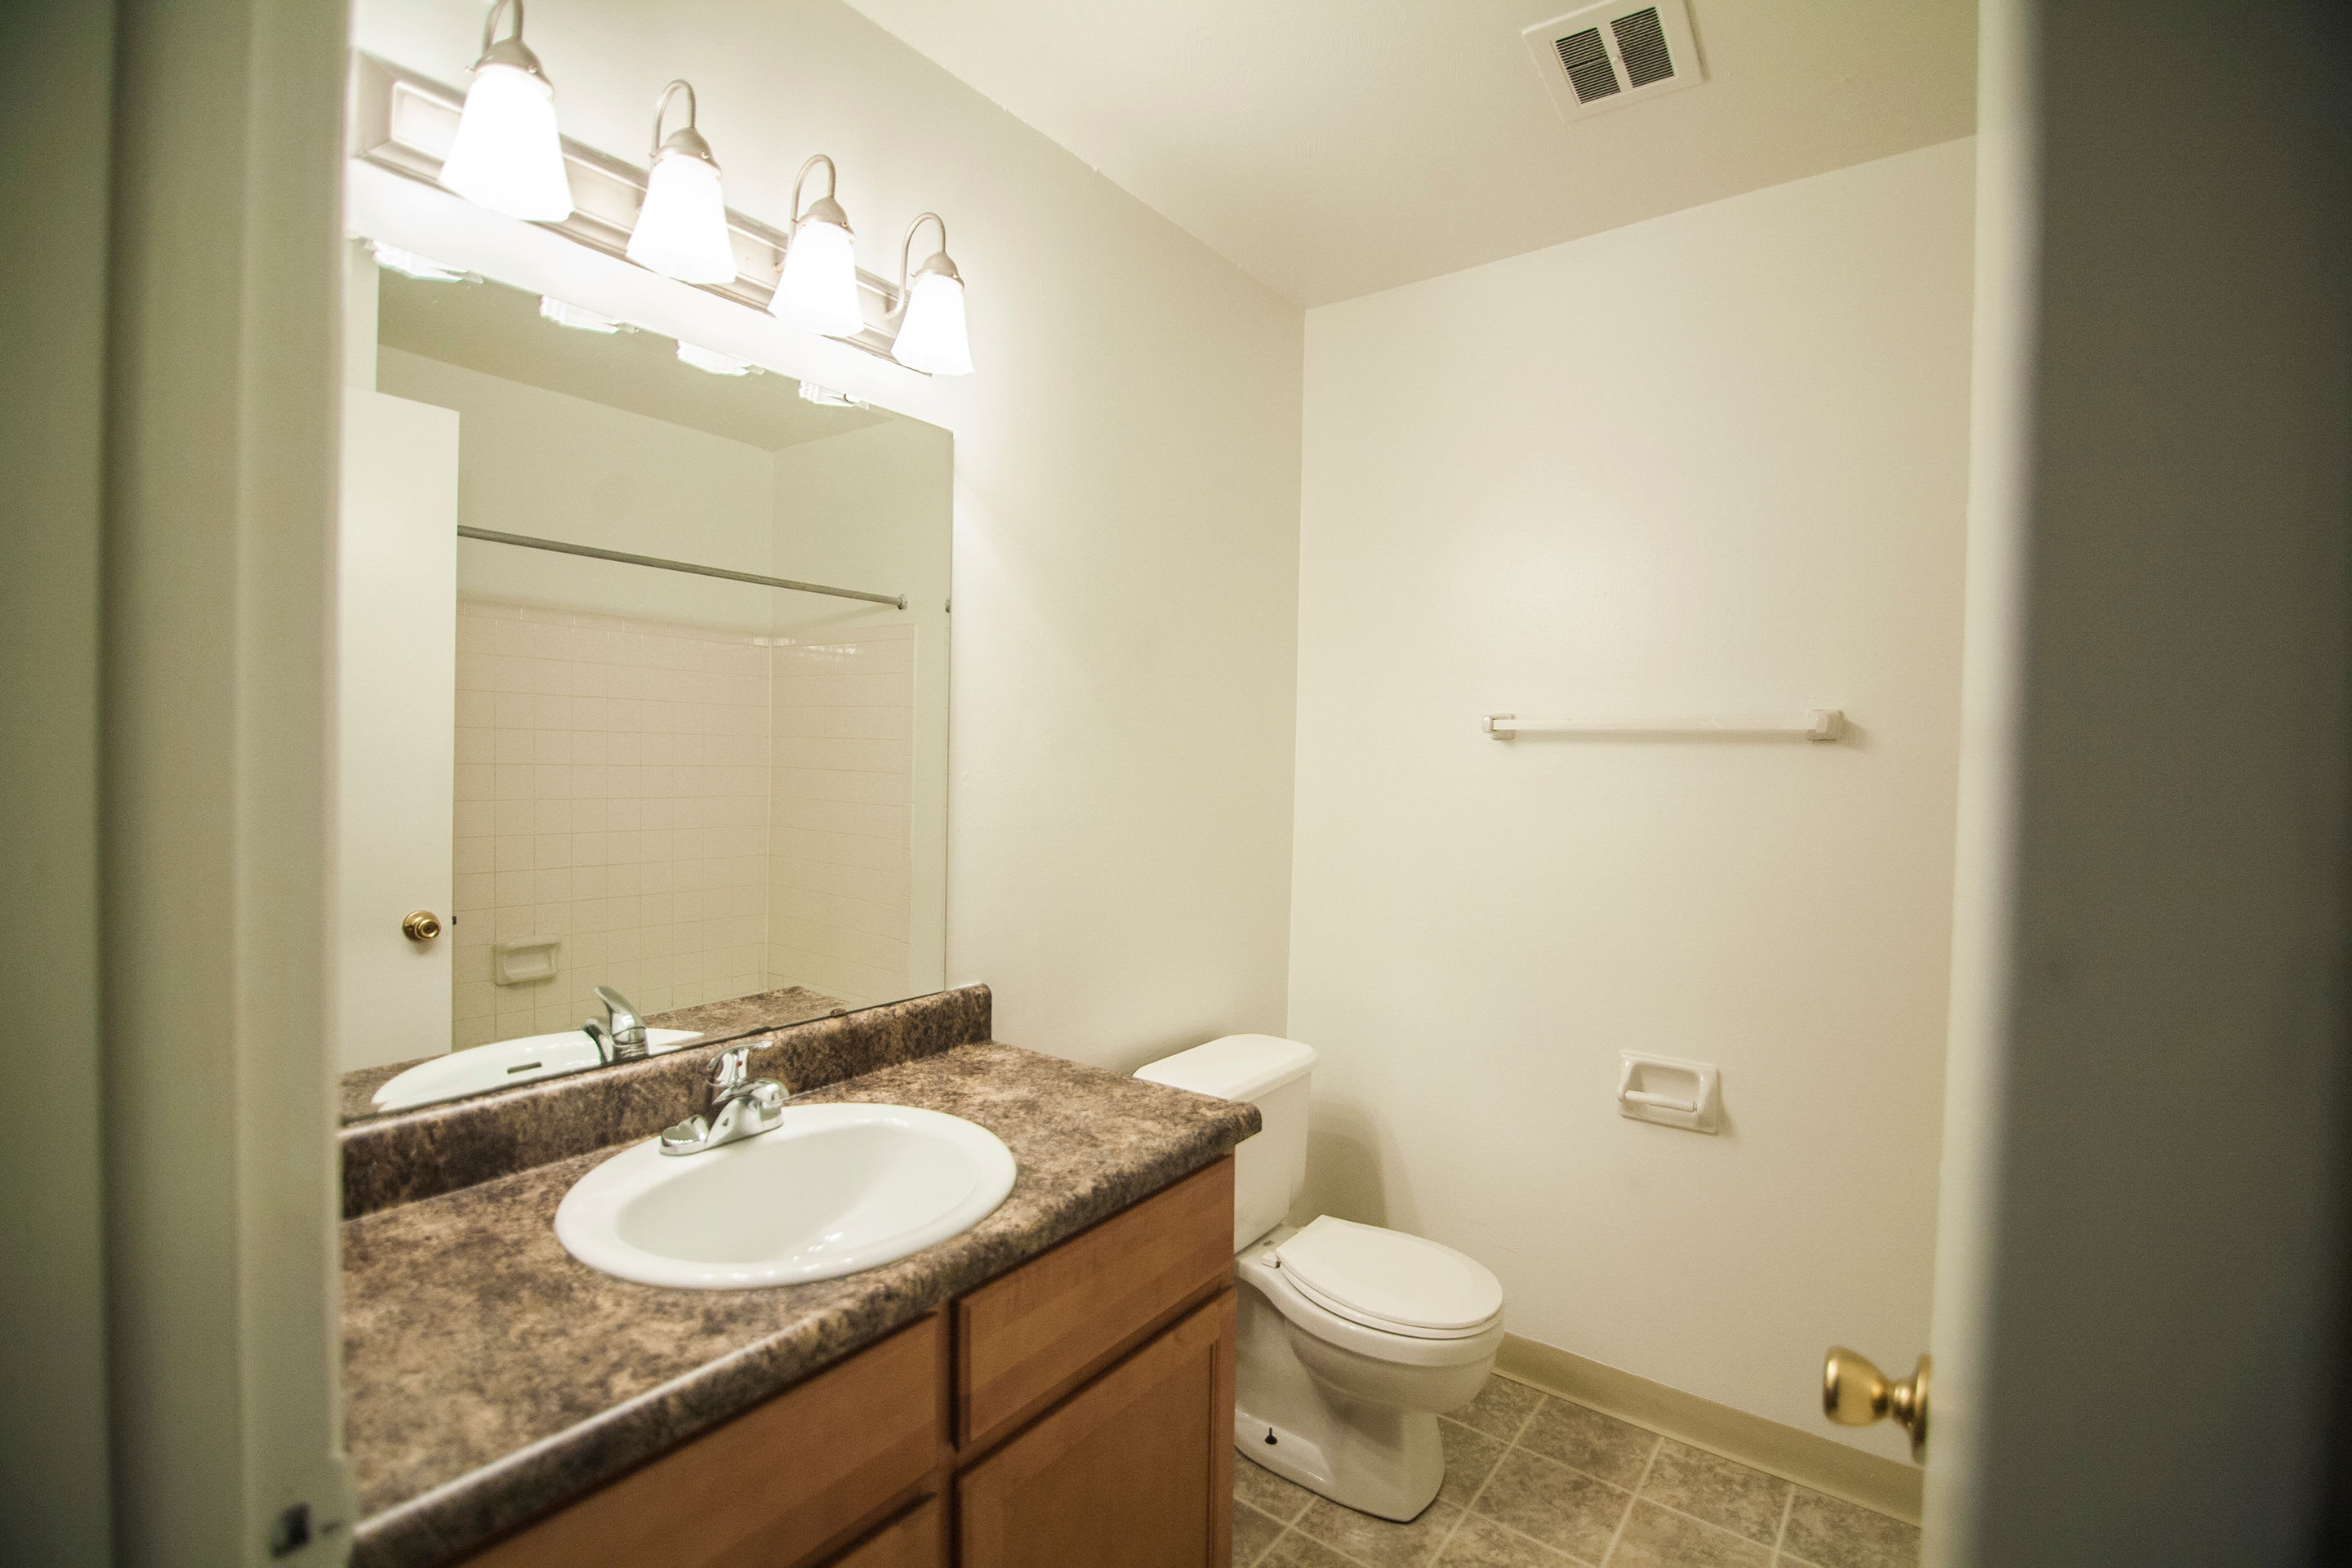 Bathroom at Beech Meadow Apartments